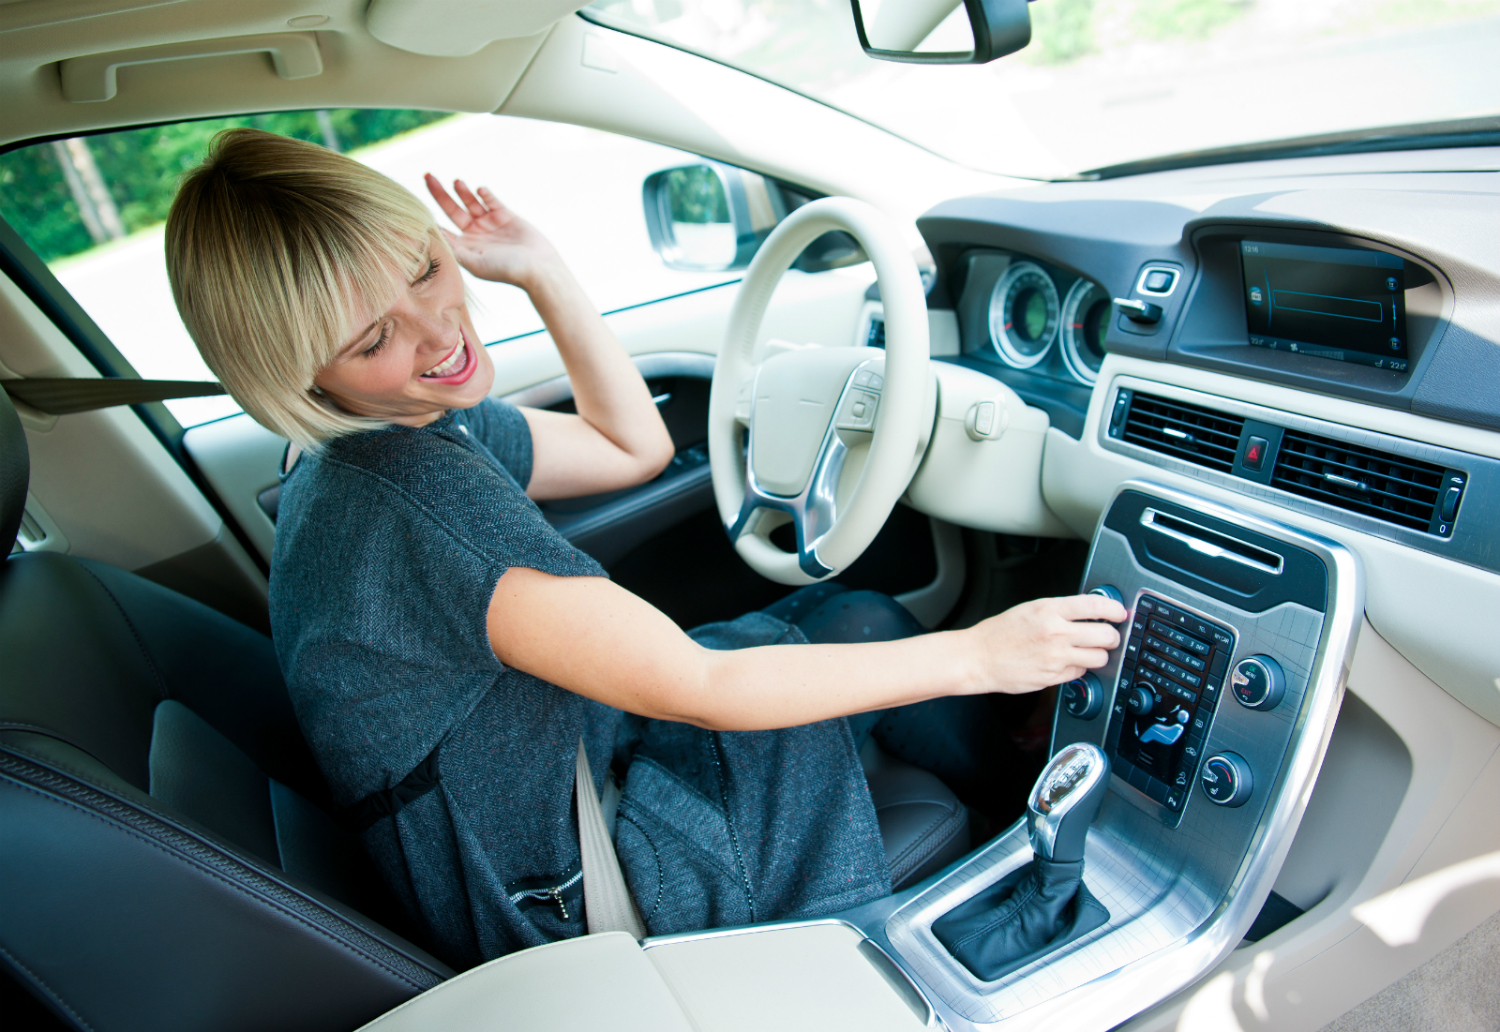 How To Lose Weight Driving to Work